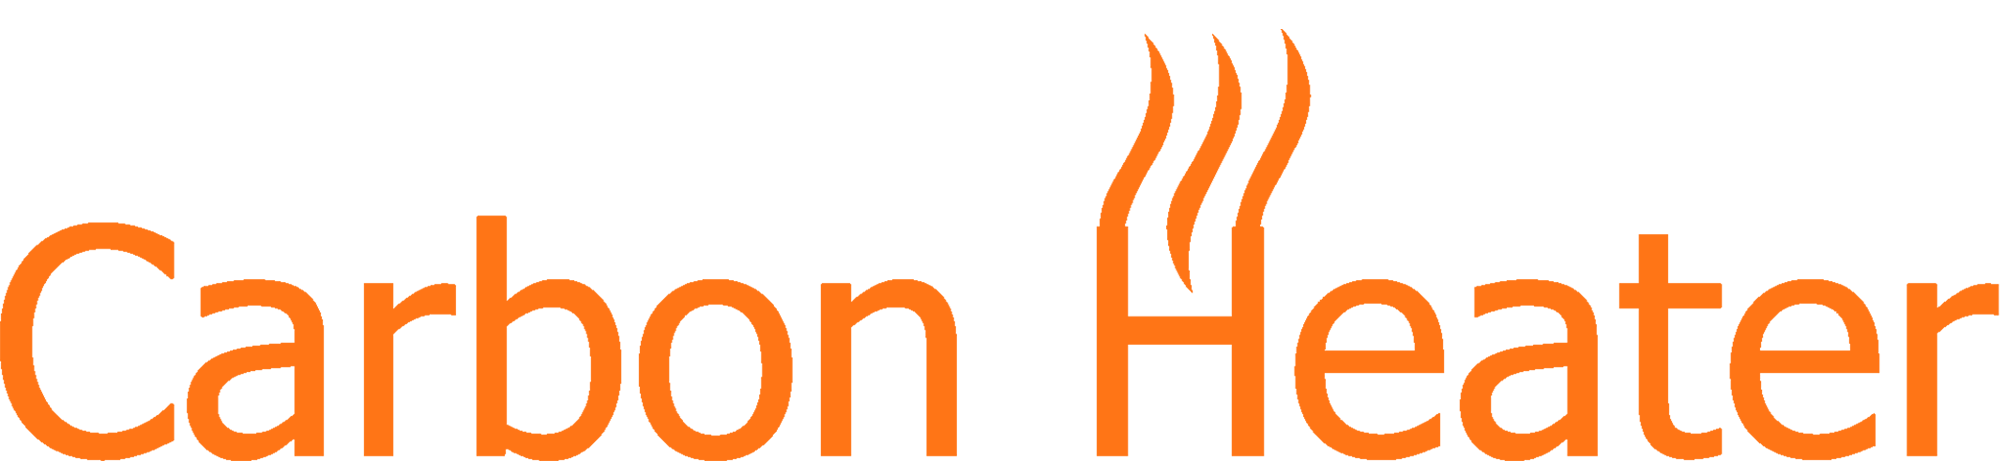 Carbon Heater Logo